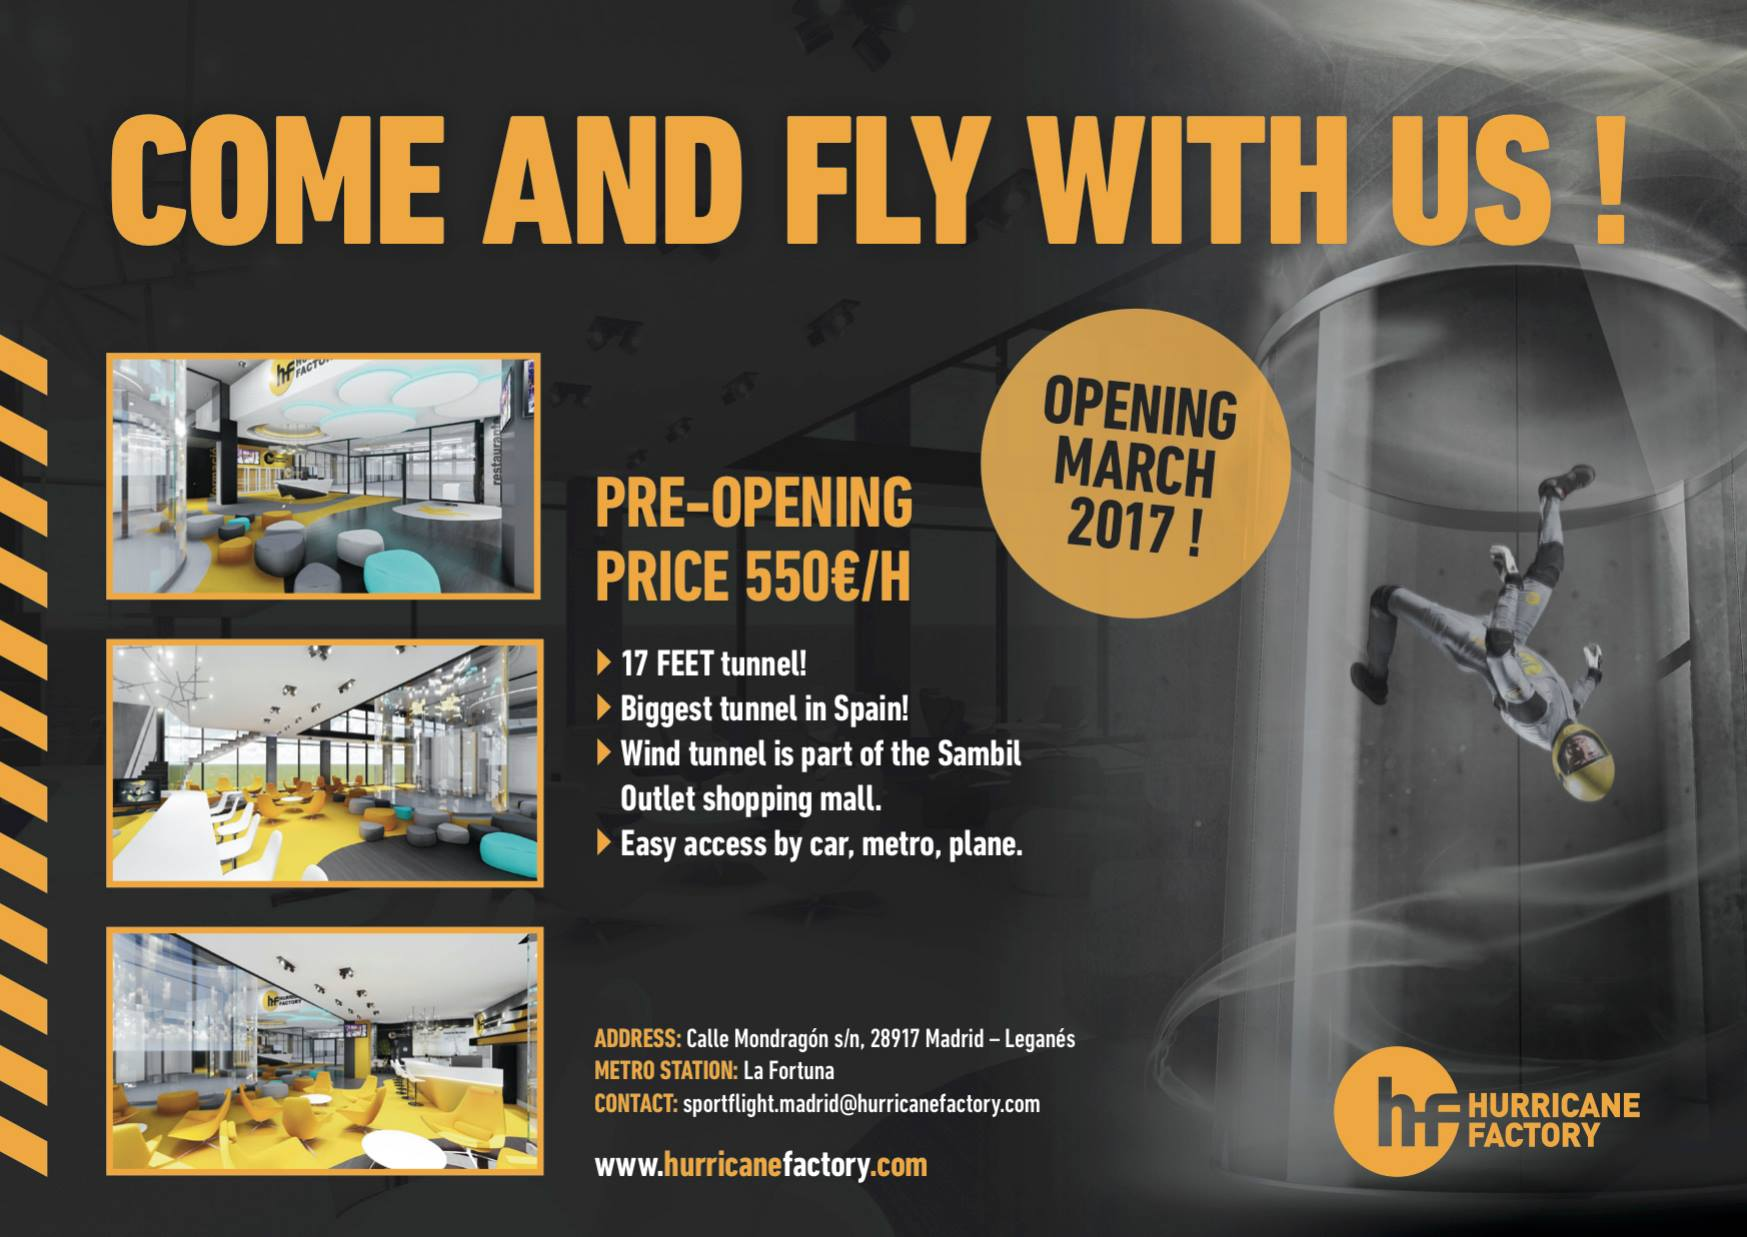 Hurricane Factory Madrid Pre-Opening Offer